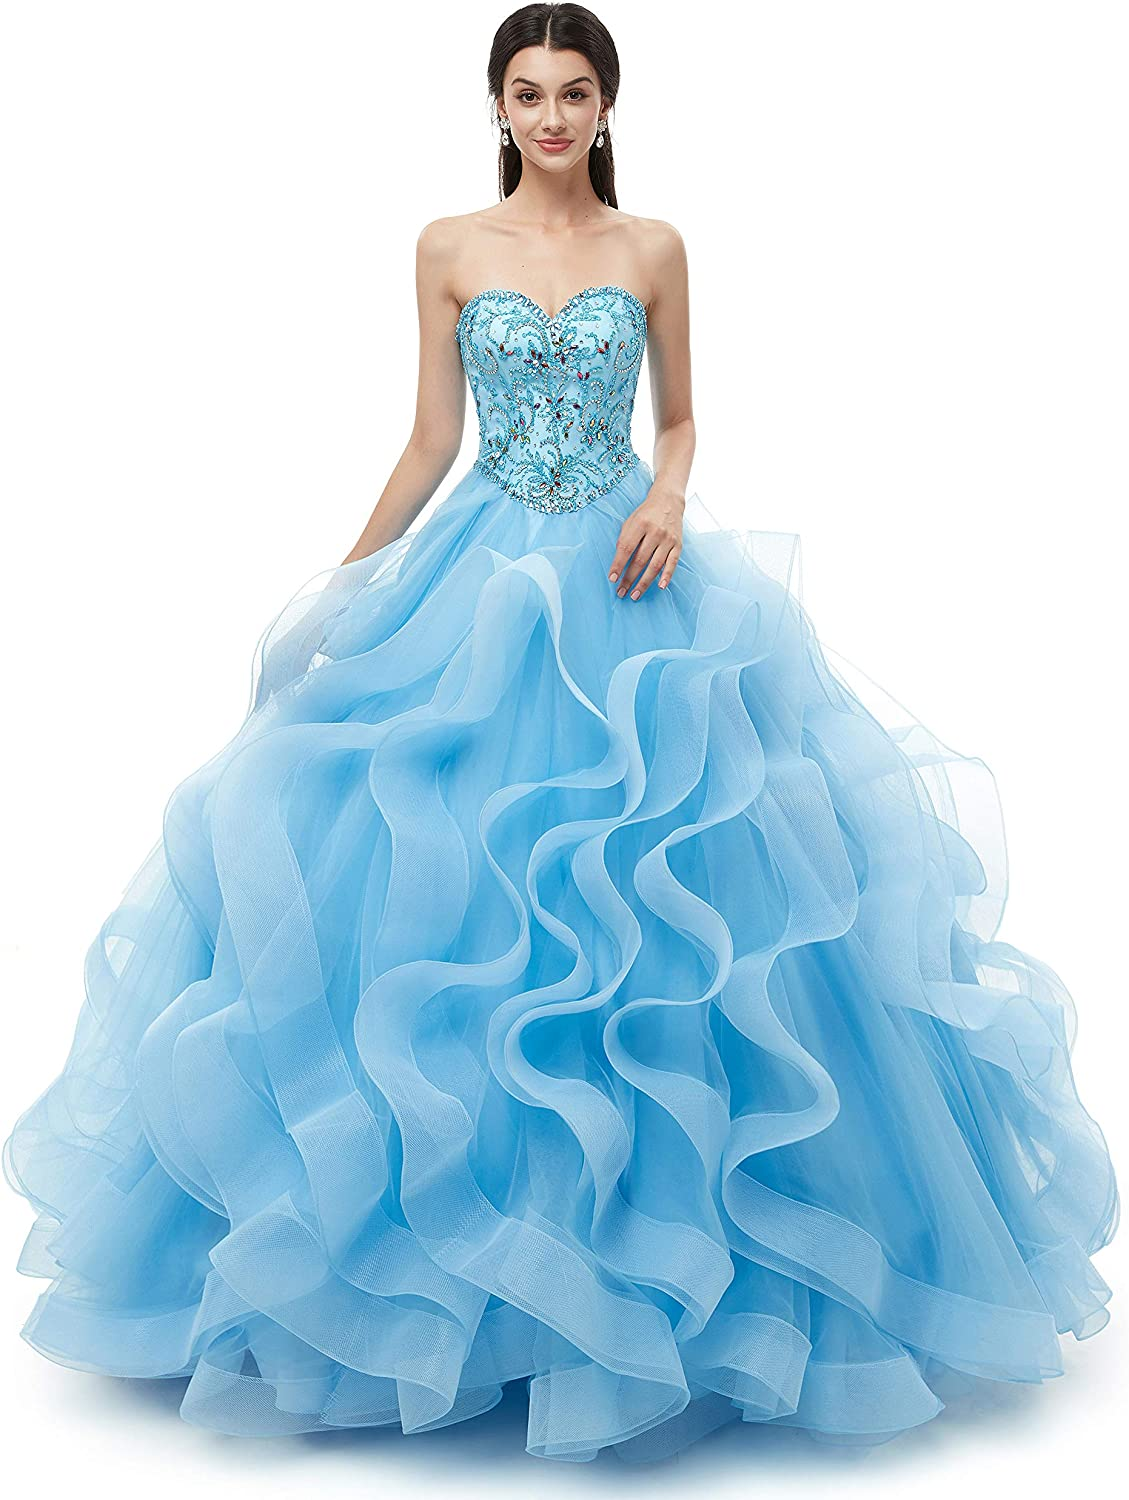 Likedpage Womens Sweetheart Ball Gown Tulle Quinceanera Dresses Prom Dress